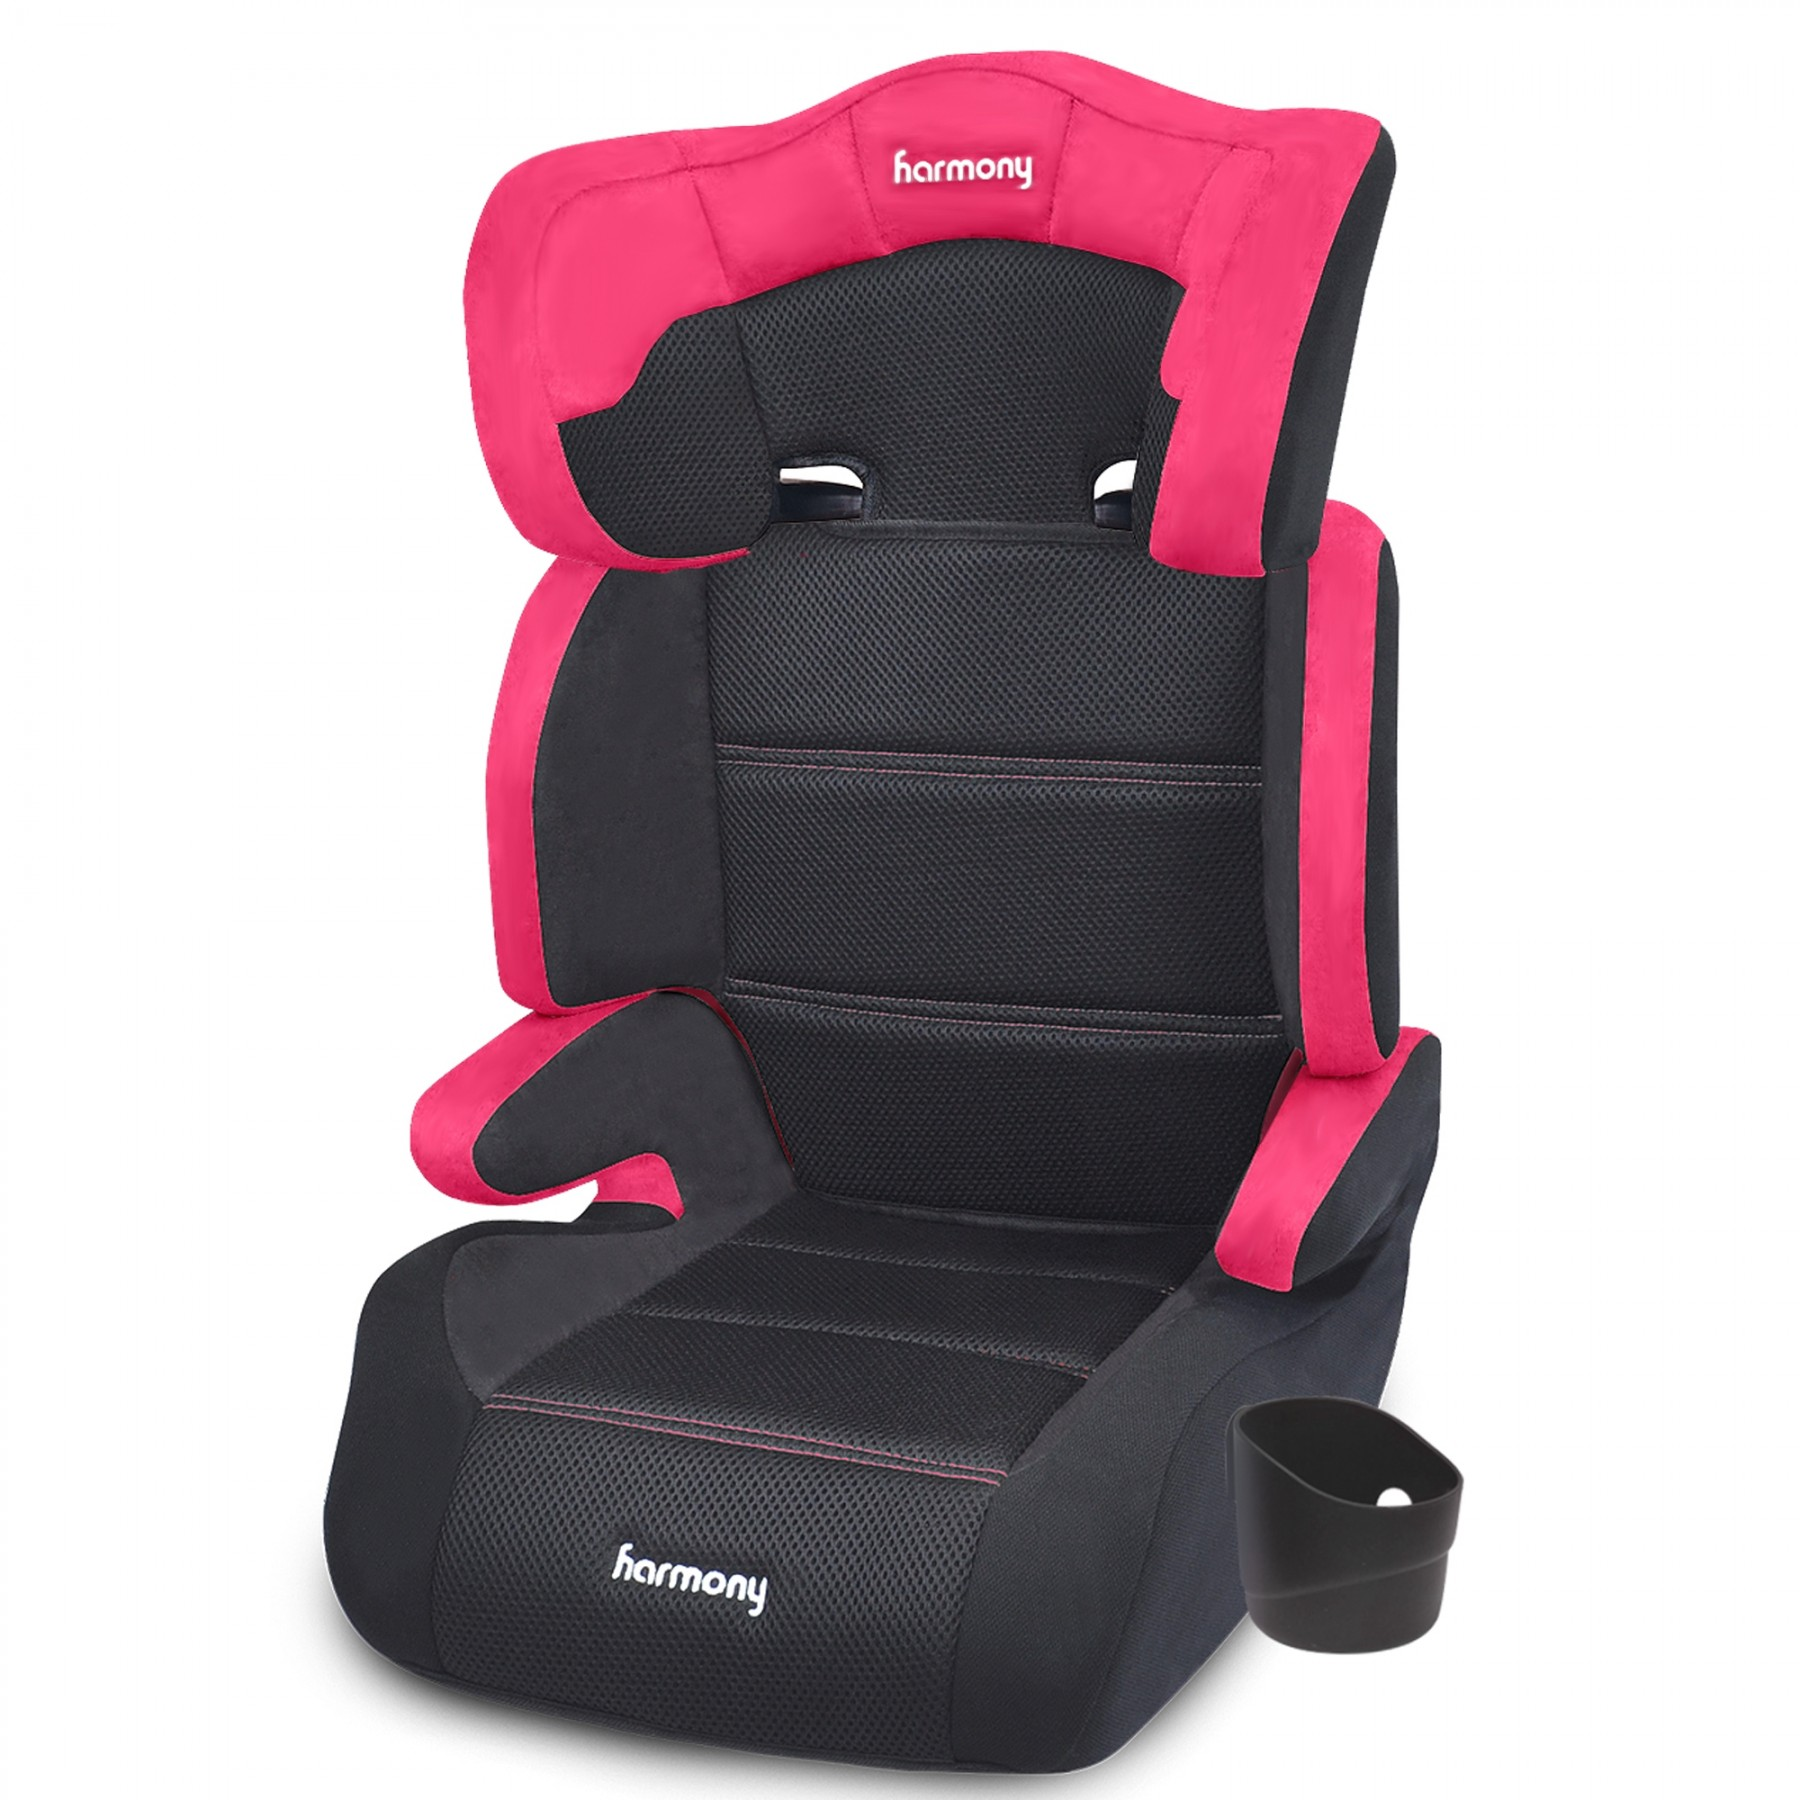 harmony juvenile booster seat instructions